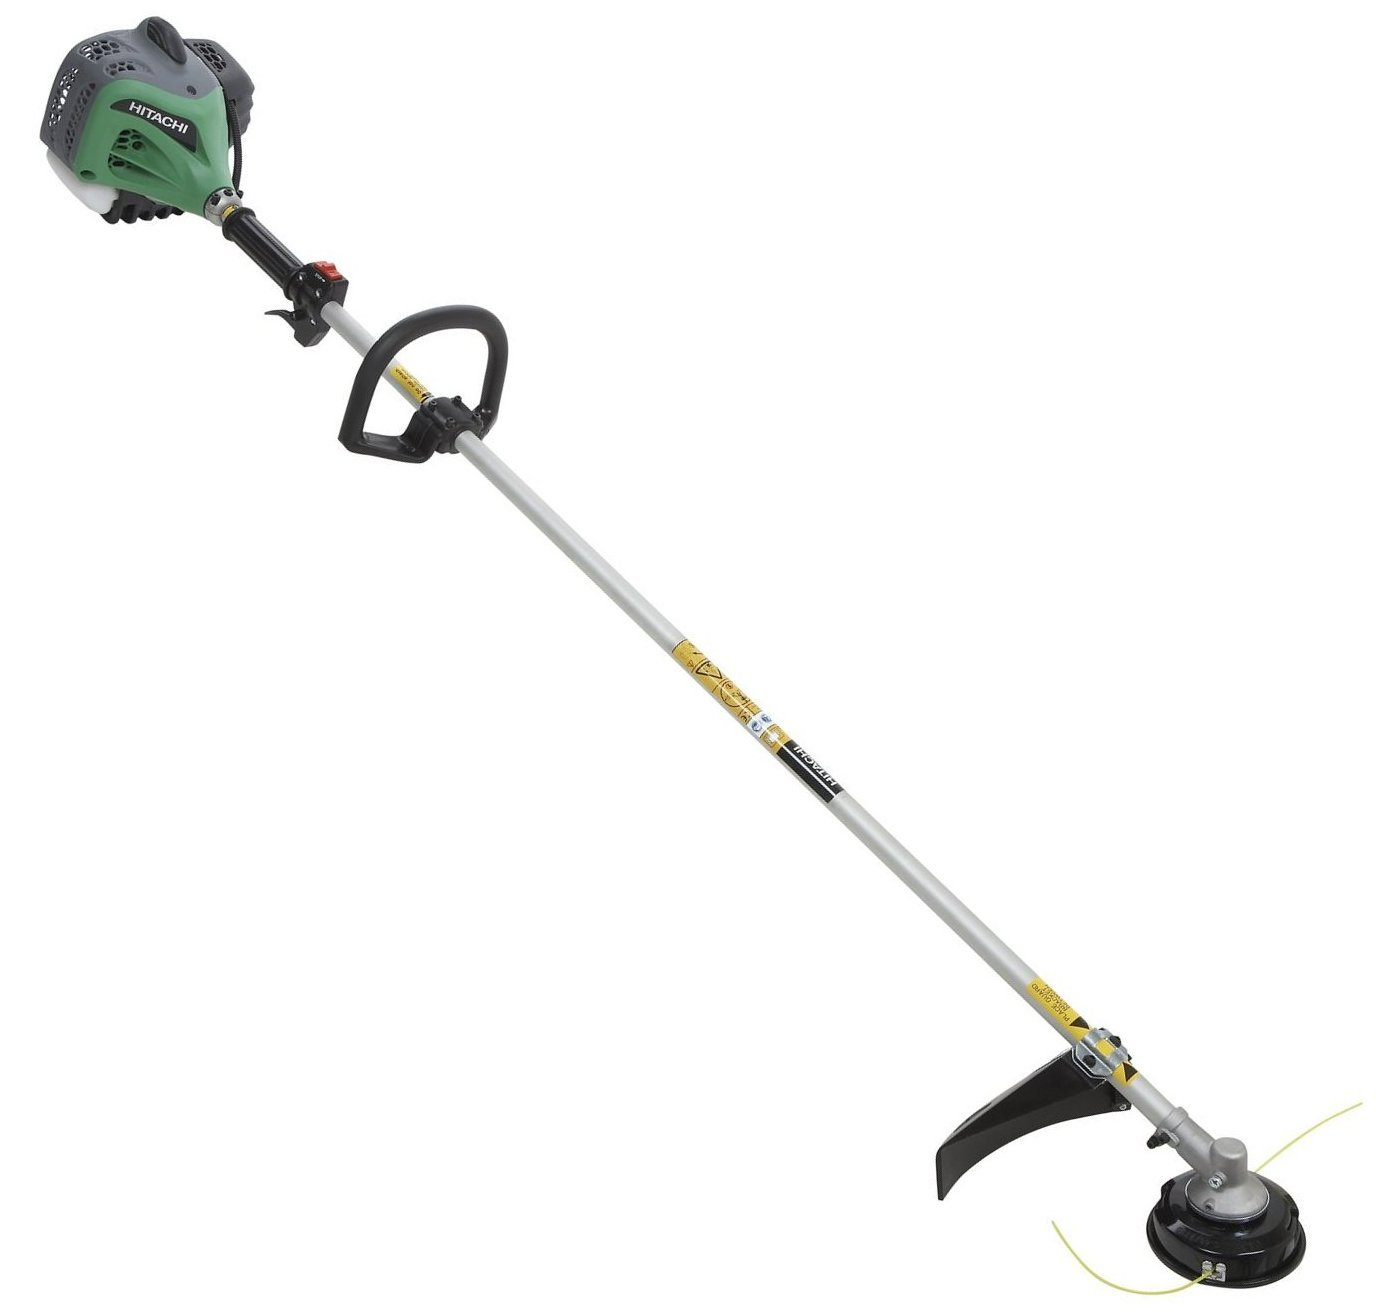 Hitachi CG24EKSL 23.9cc 2-Stroke Gas Powered Straight Shaft Commercial Grade Grass Trimmer / Brush Cutter (CARB Compliant)